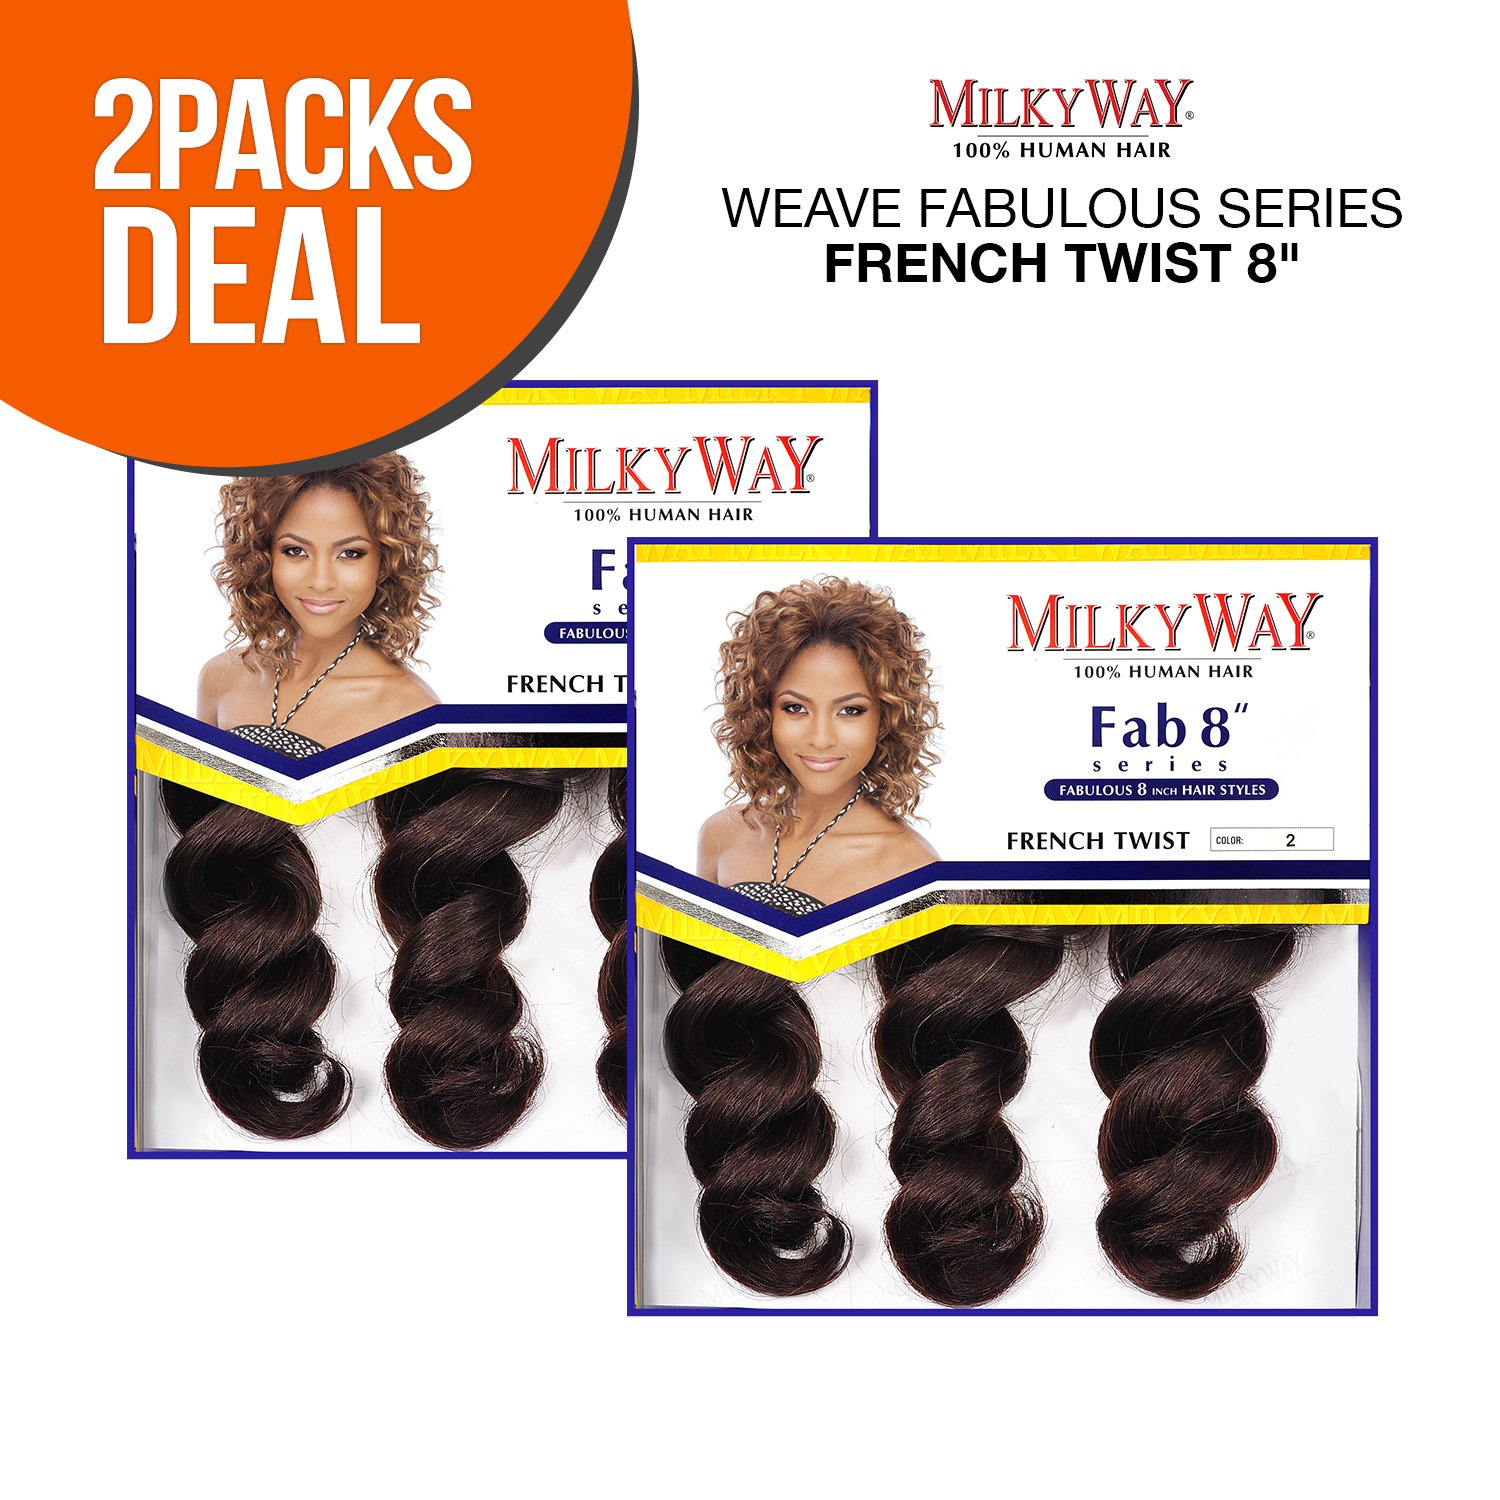 Amazon 2 Pack Deals Milkyway Human Hair Weave Fabulous